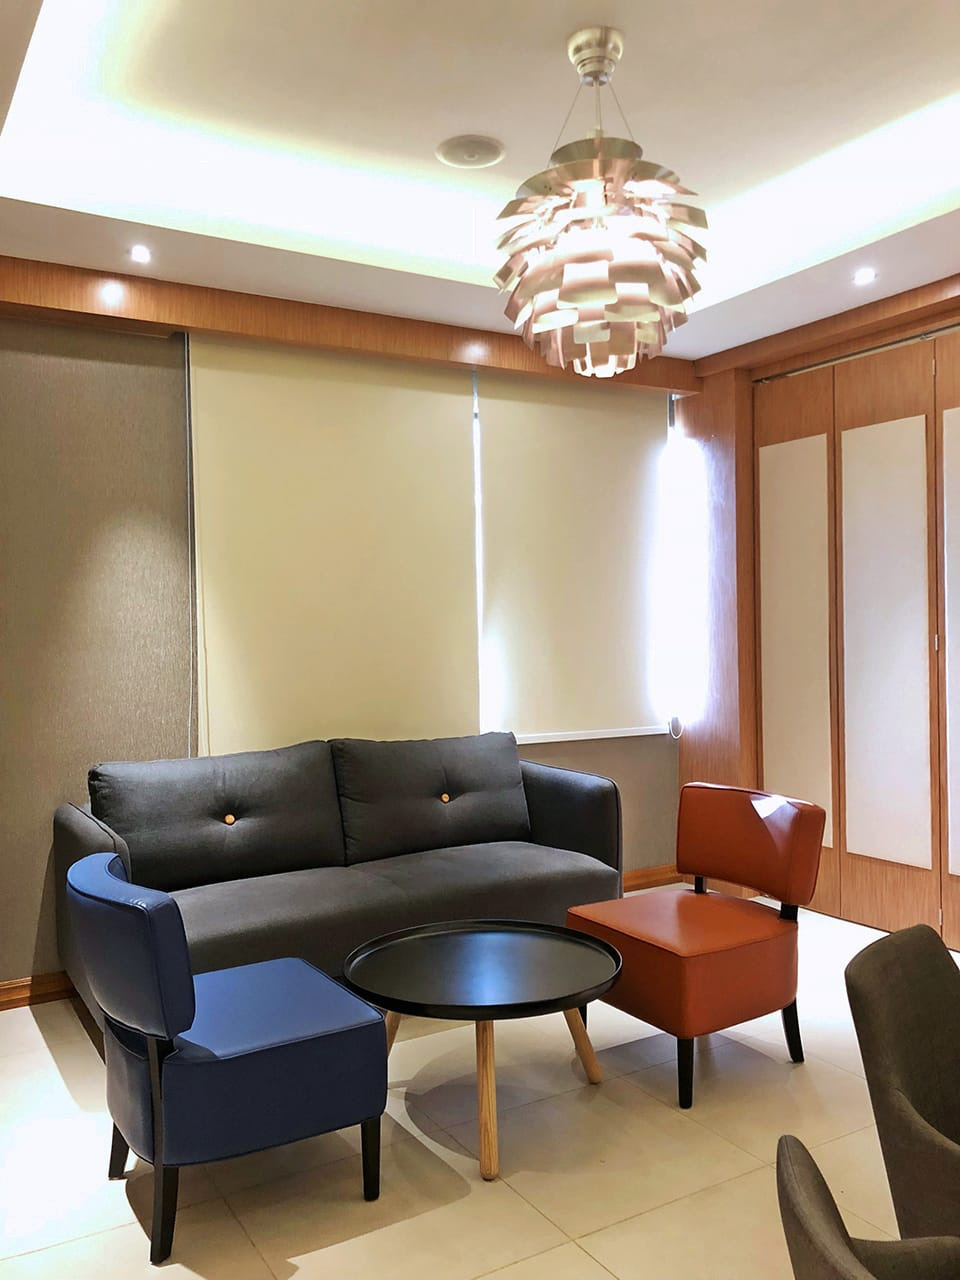 Fisherman's Wharf Restaurant, 8 Miles - Yangon, Myanmar | Product Seen: [Bruffon 3–Seater Sofa - Dark Blue, Leopard 1–Seater Sofa & Lucy Coffee Table – Big]